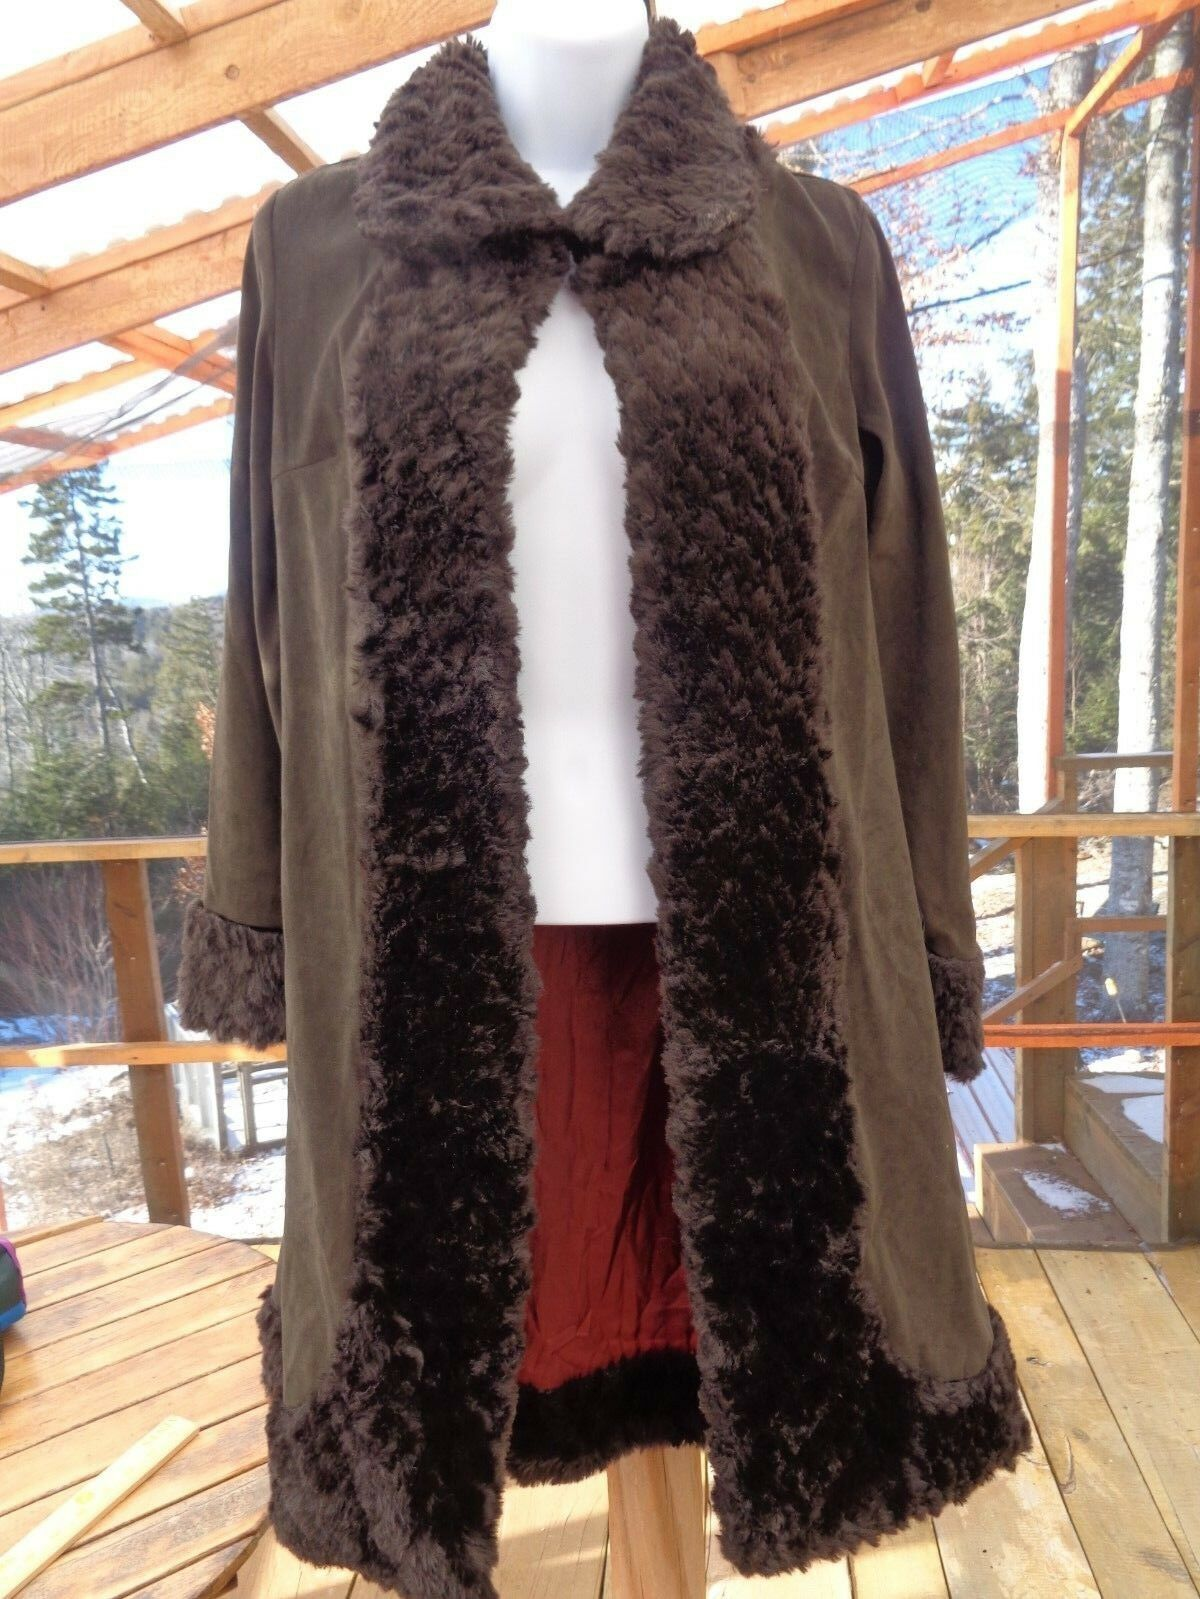 KRIZIA d. SWING  COAT BROWN  WOMEN'S MEDIUM, 1 BUTTON FAUX FUR EDGES,STYLE 81021